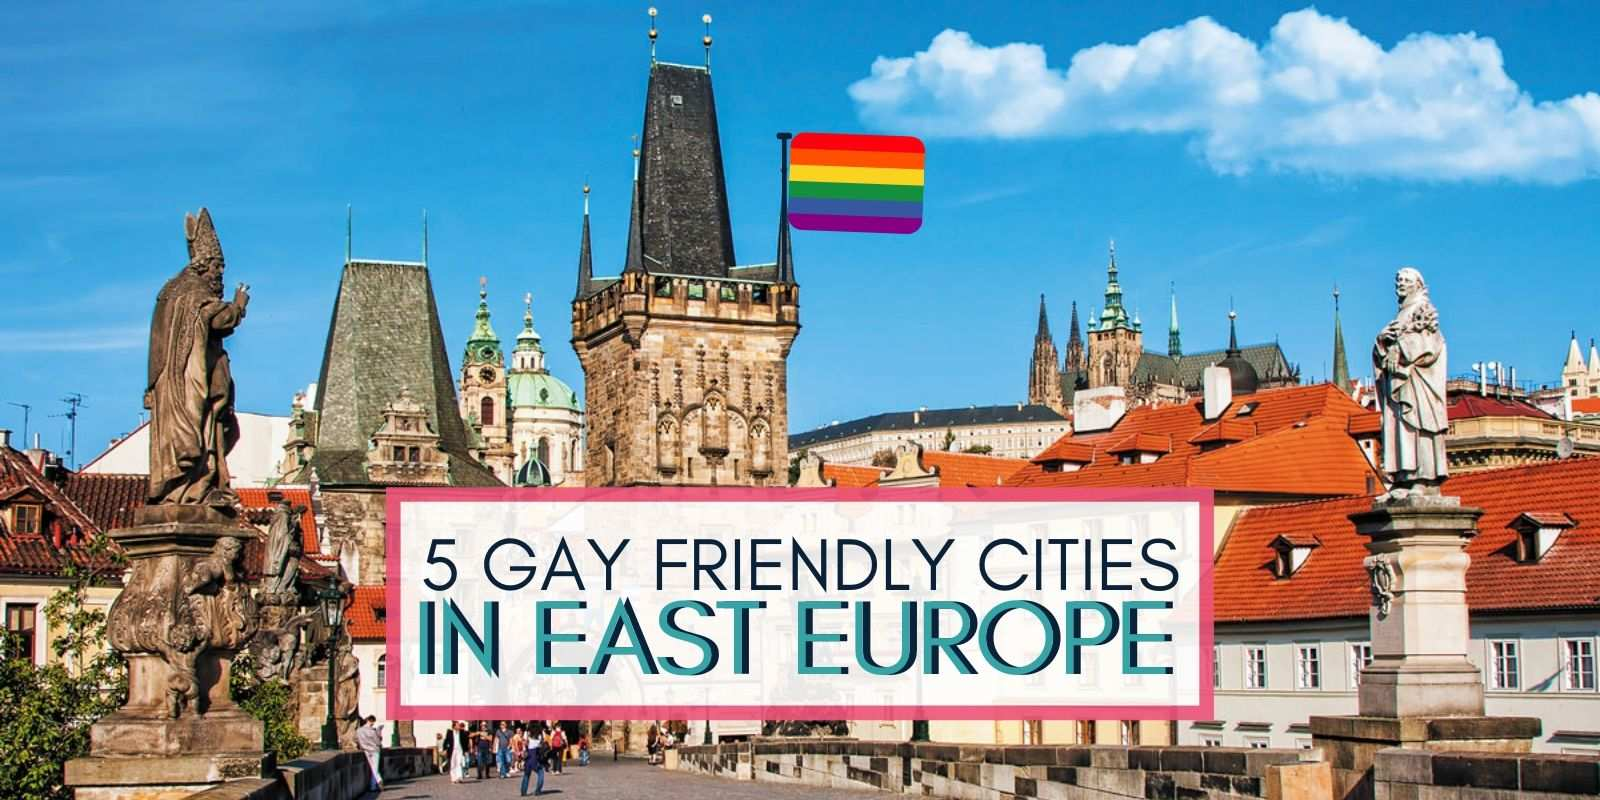 A guide to the most gay friendly cities in East Europe, including the best gay bars and events to check out on your travels.